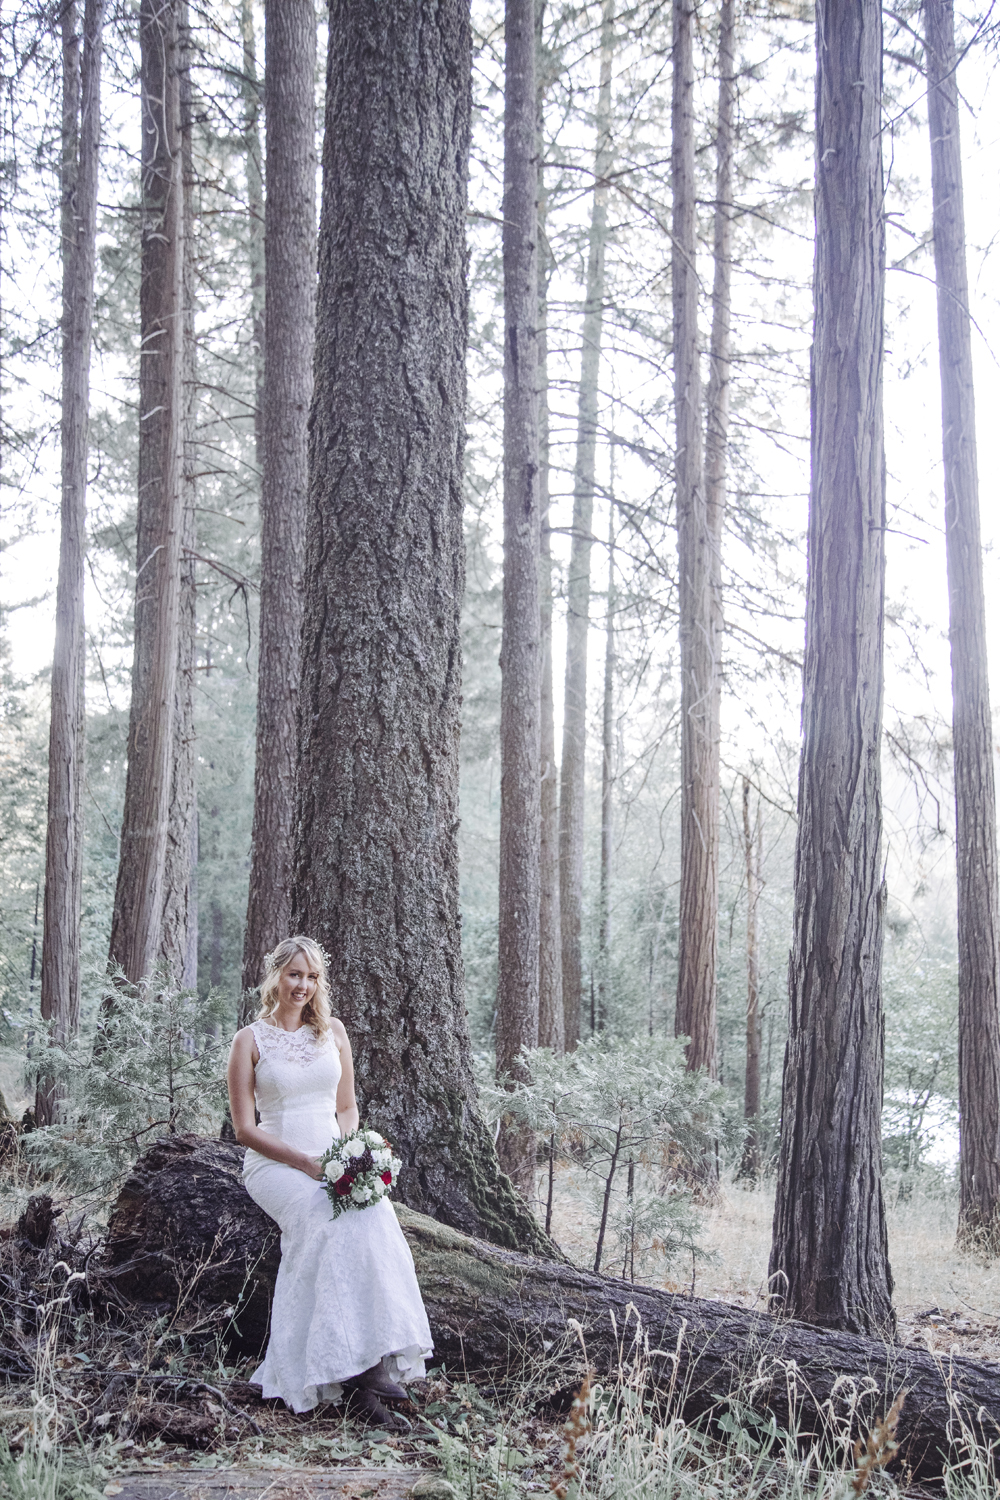 Rustic-Forest-Country-Wedding-Chico-CA25.jpg